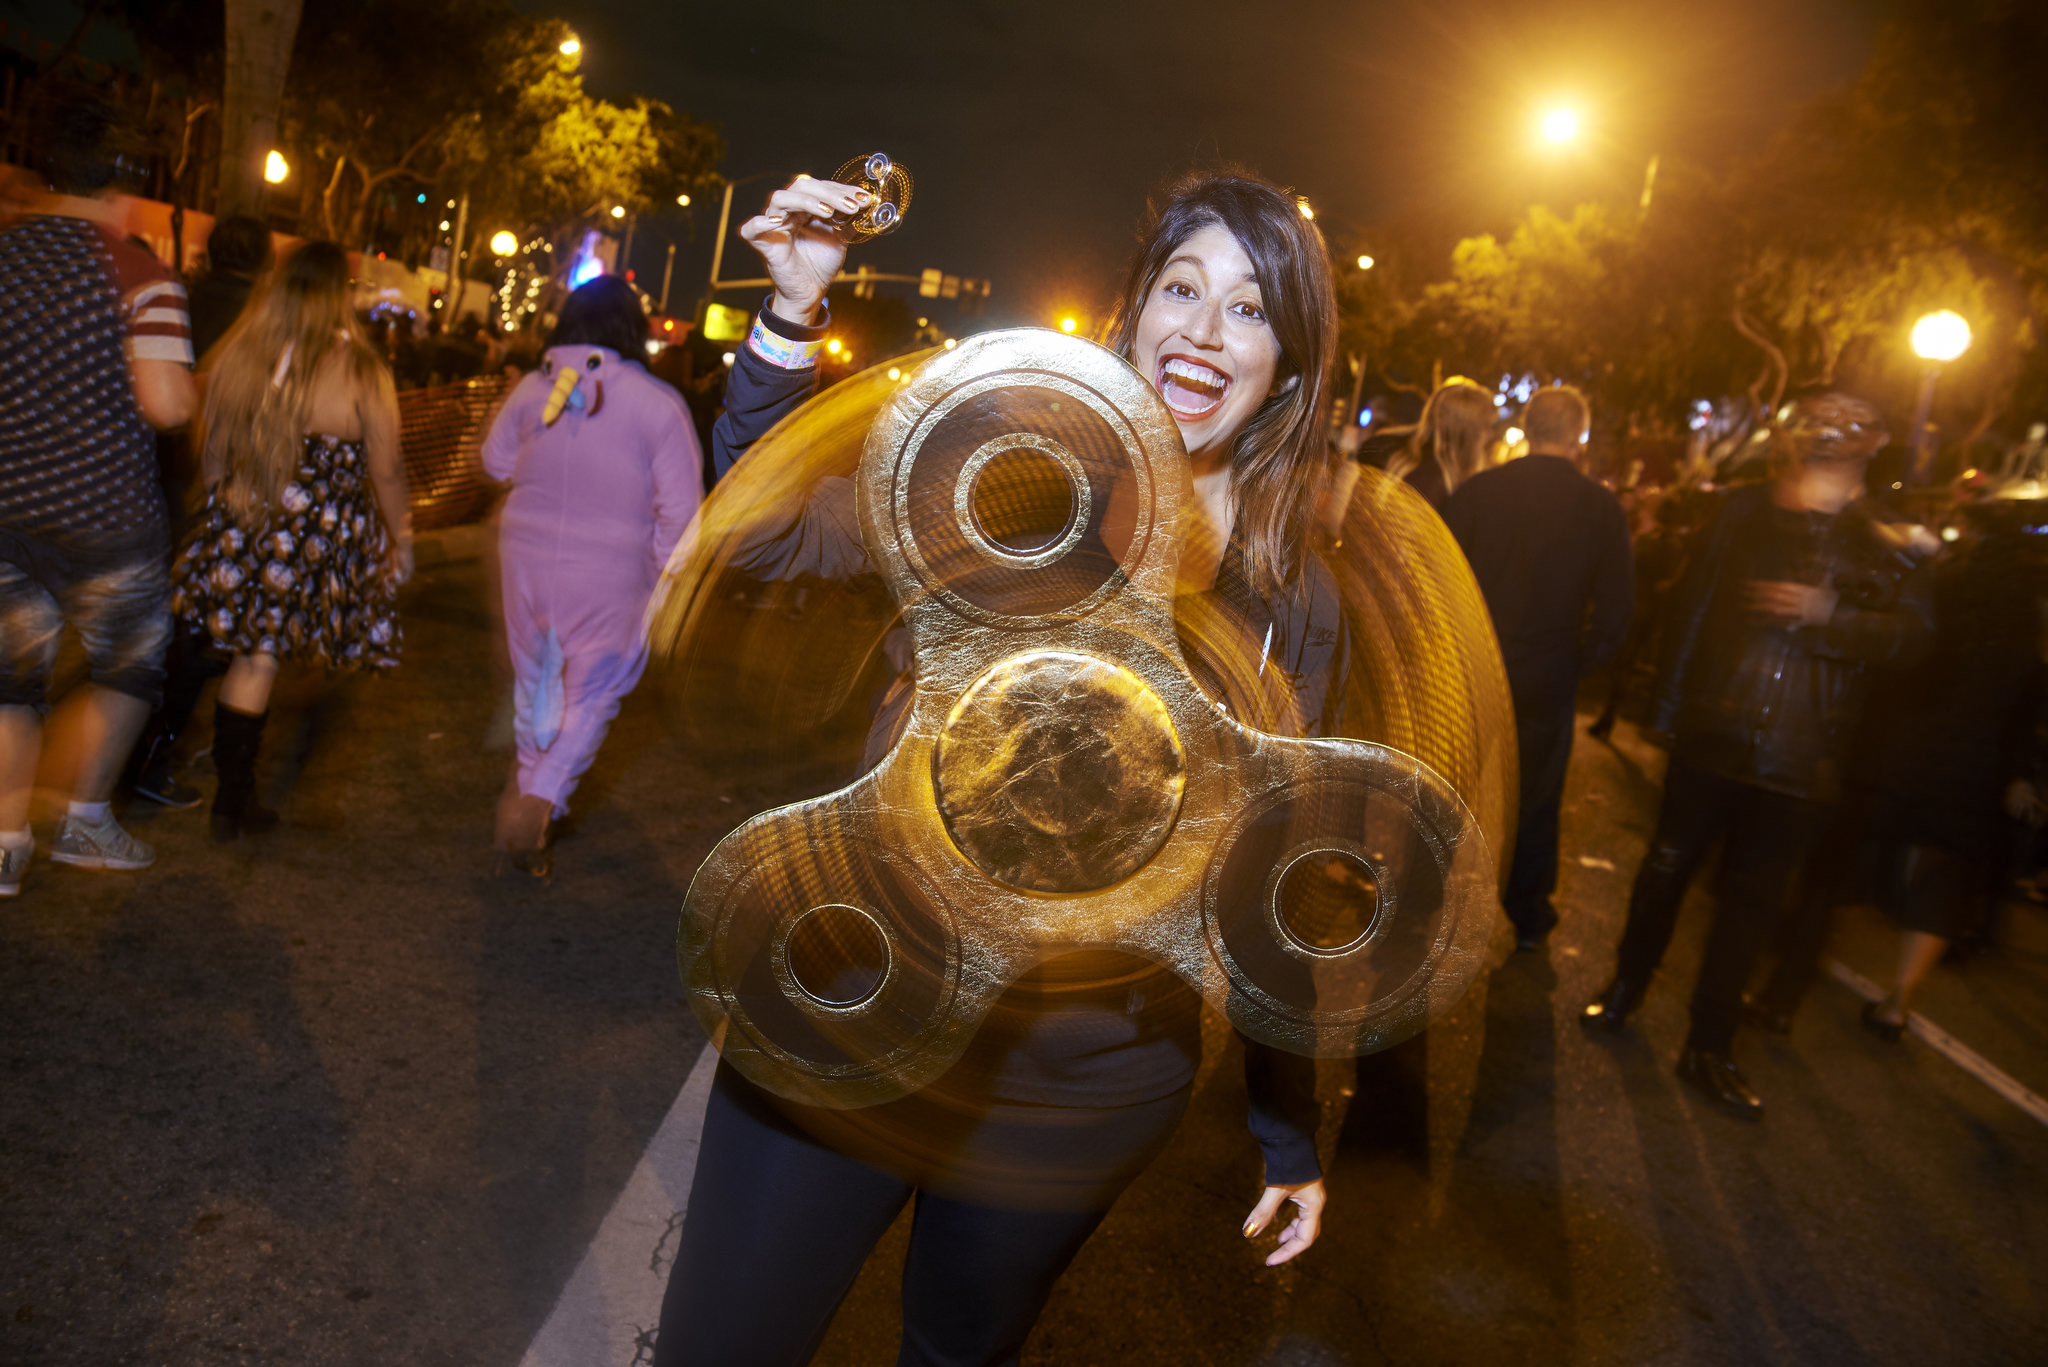 The best Halloween costumes we saw in L.A. in 2017